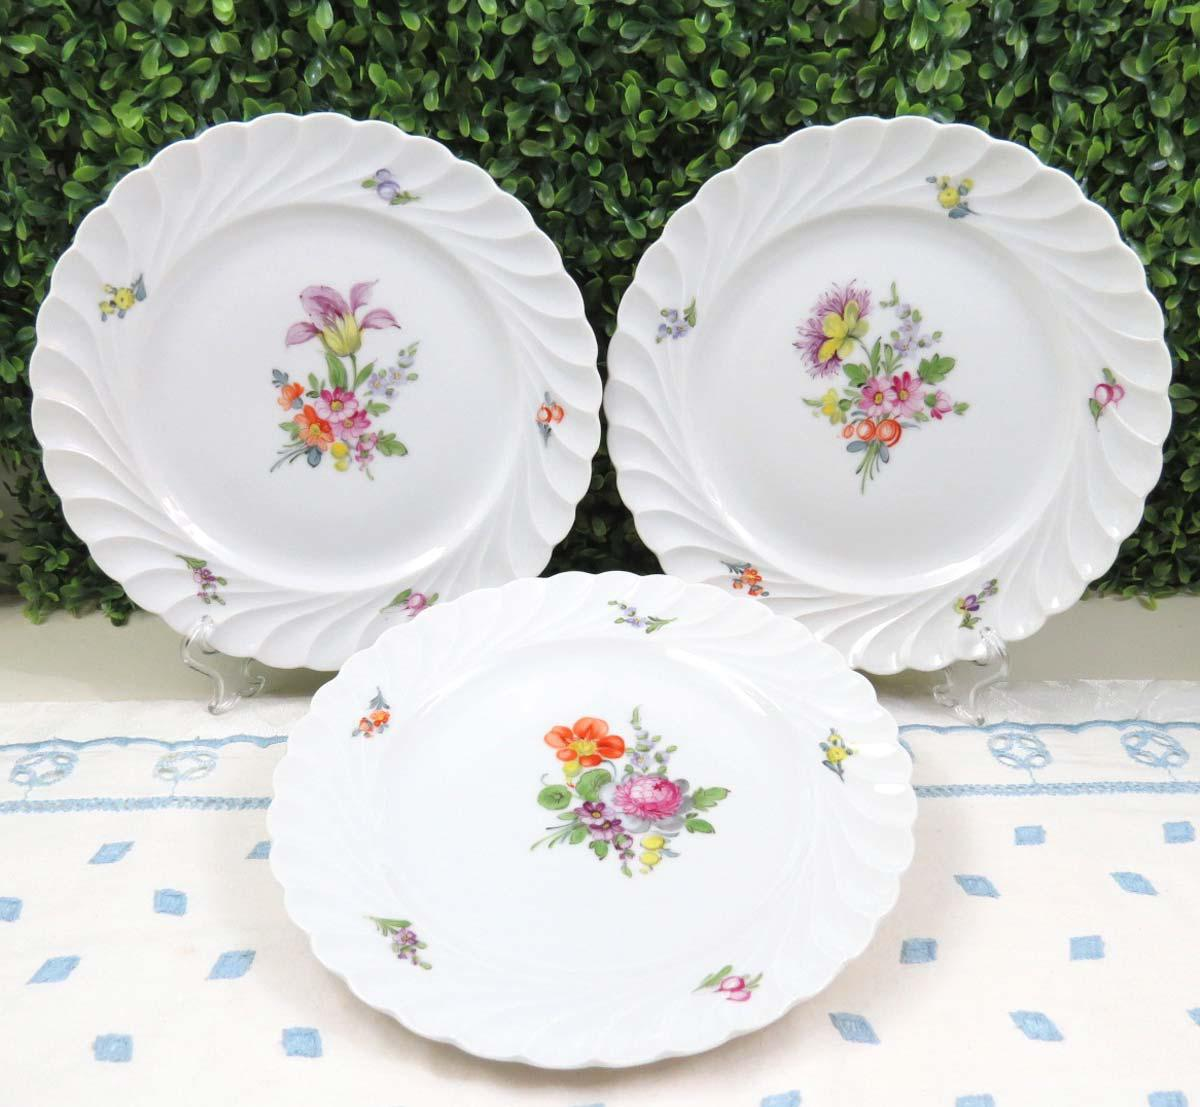 Vintage Nymphenburg Dresden Flowers Salad Plates - Set of 3 - Image 8 of 9  sc 1 st  Chairish & Vintage Nymphenburg Dresden Flowers Salad Plates - Set of 3 | Chairish